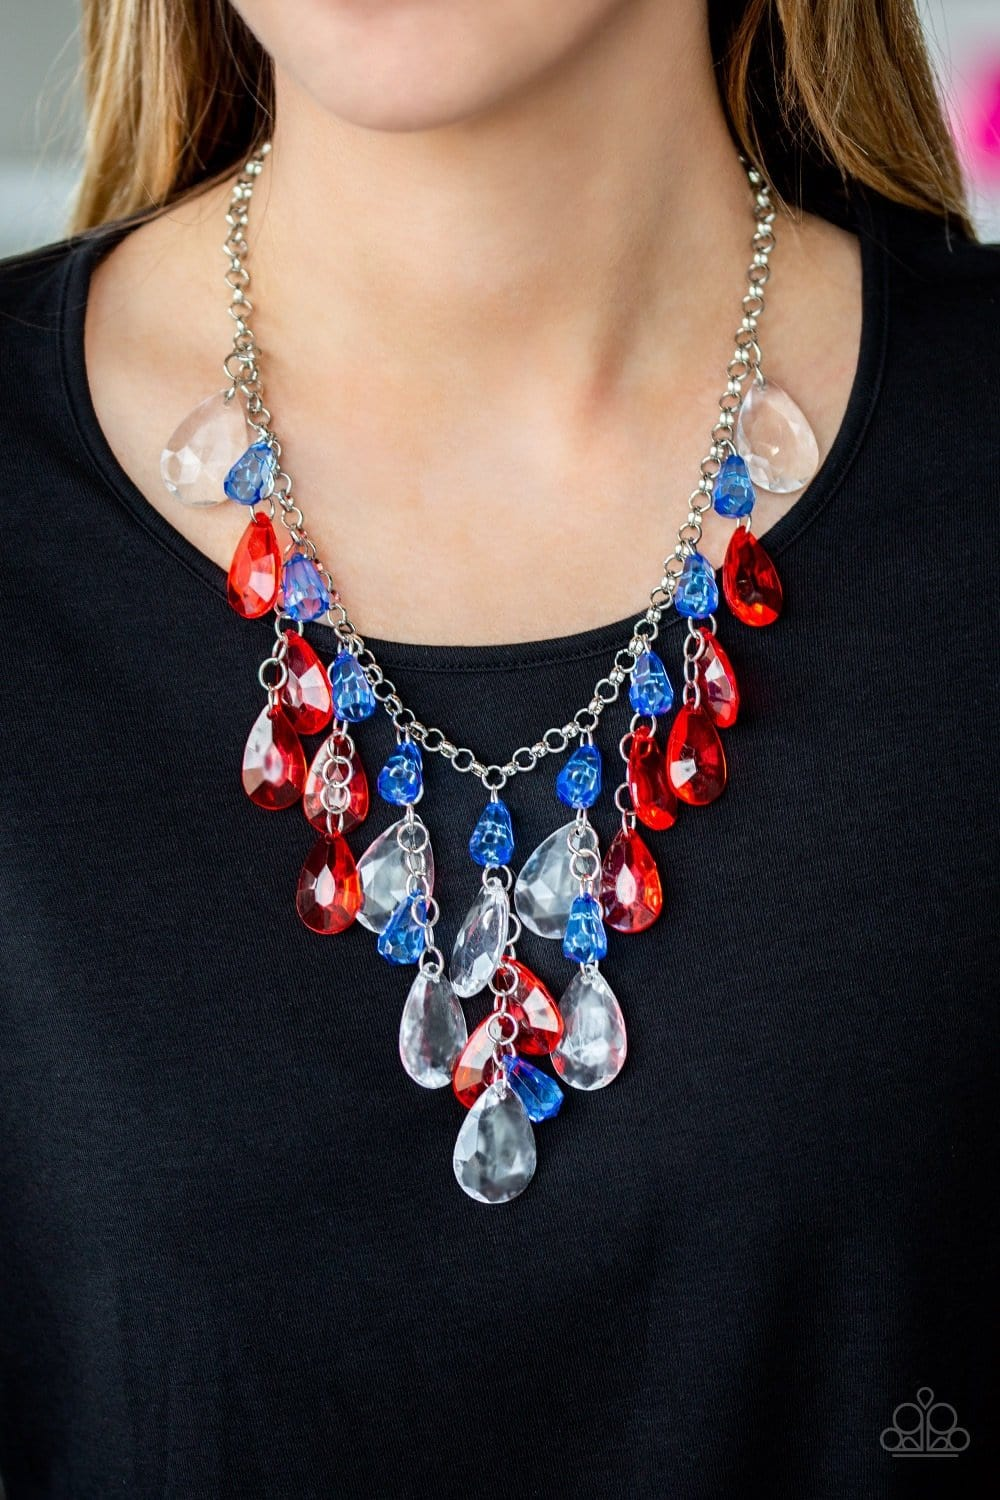 Irresistible Iridescence - Multi: Paparazzi Accessories - Jewels N' Thingz Boutique